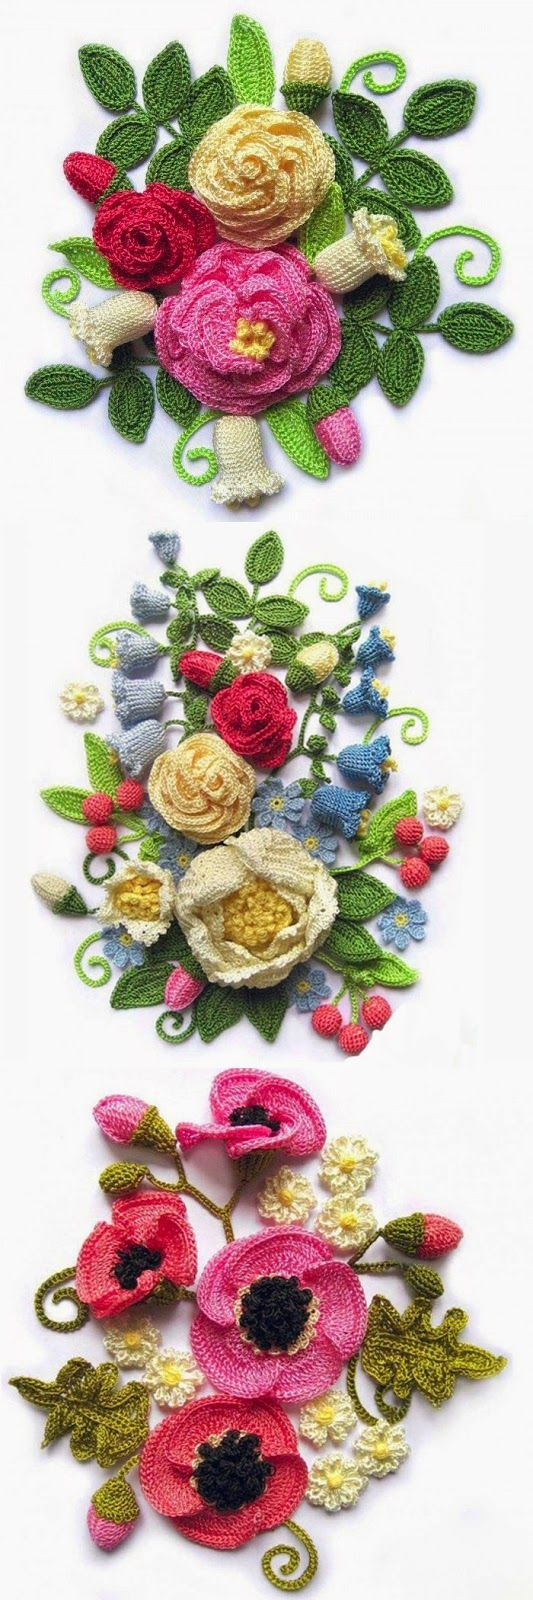 Very beautiful crochet flowers                                                                                                                                                                                 More